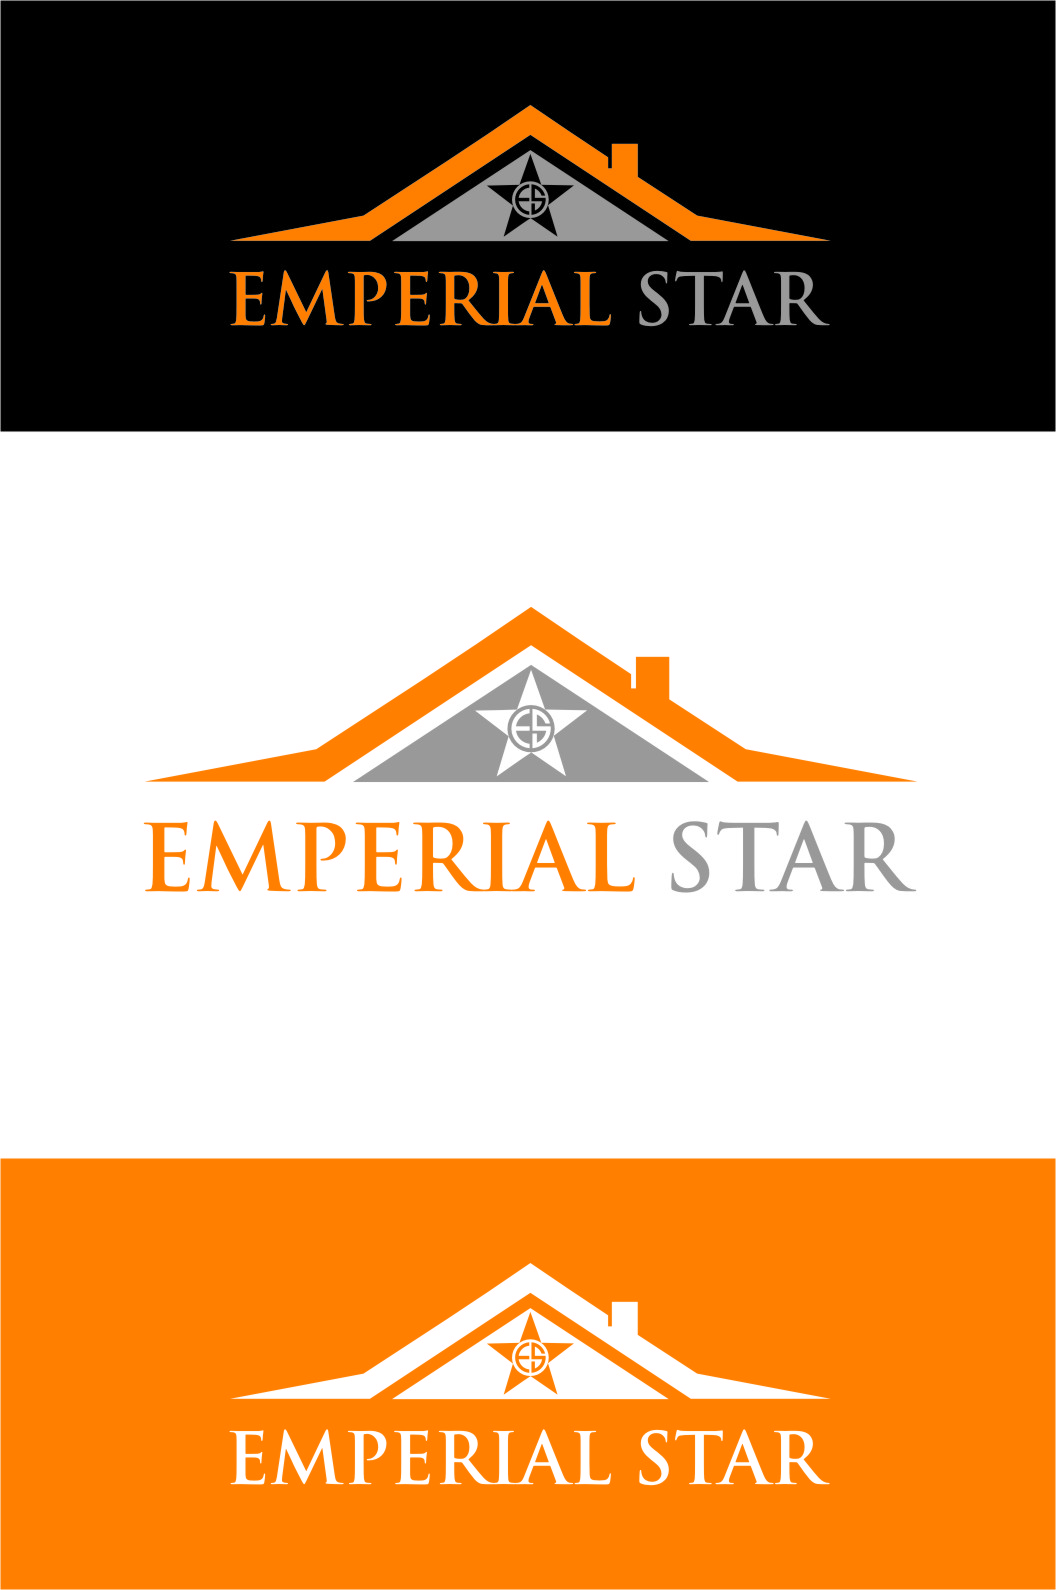 Logo Design by RasYa Muhammad Athaya - Entry No. 157 in the Logo Design Contest Emperial Star Logo Design.